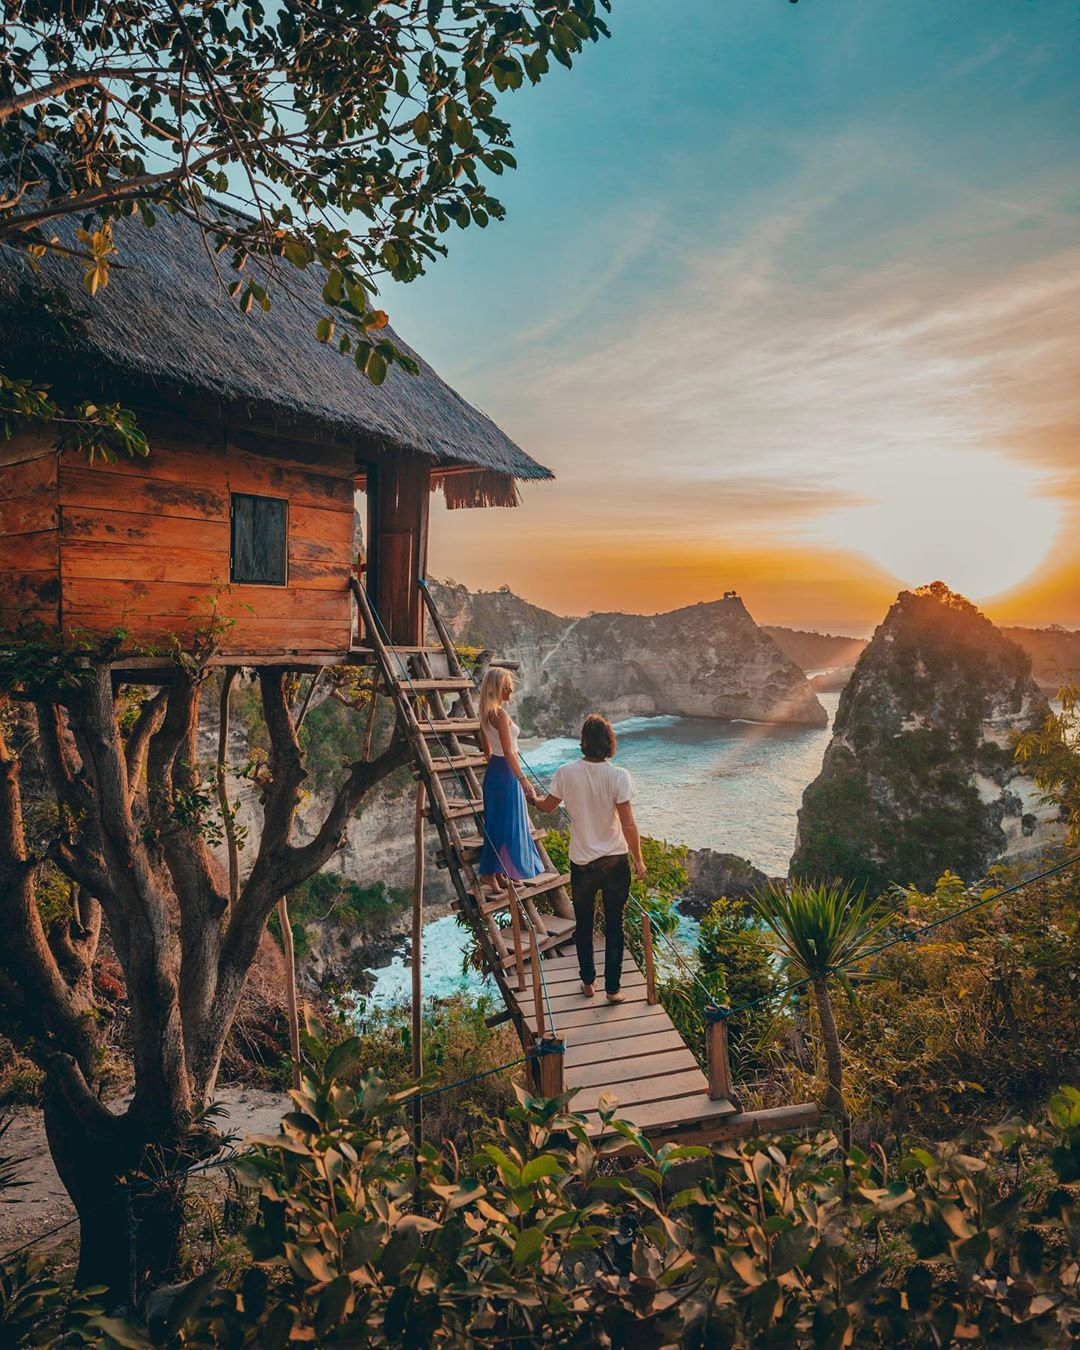 Bali Travel Inspiration